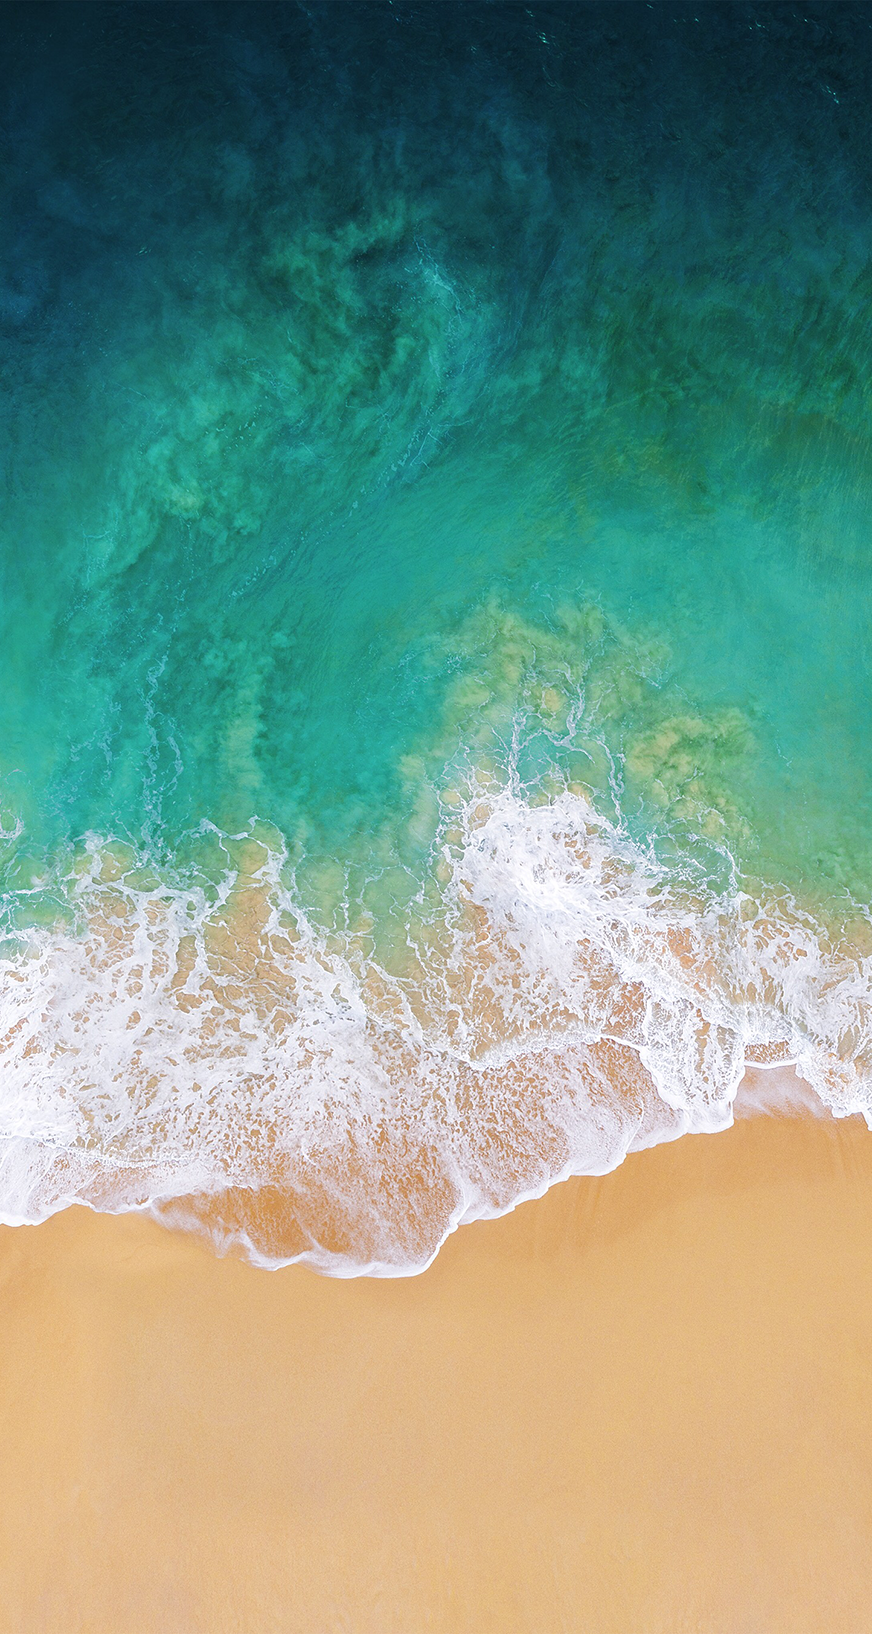 Download the Real iOS 11 Wallpaper for iPhone